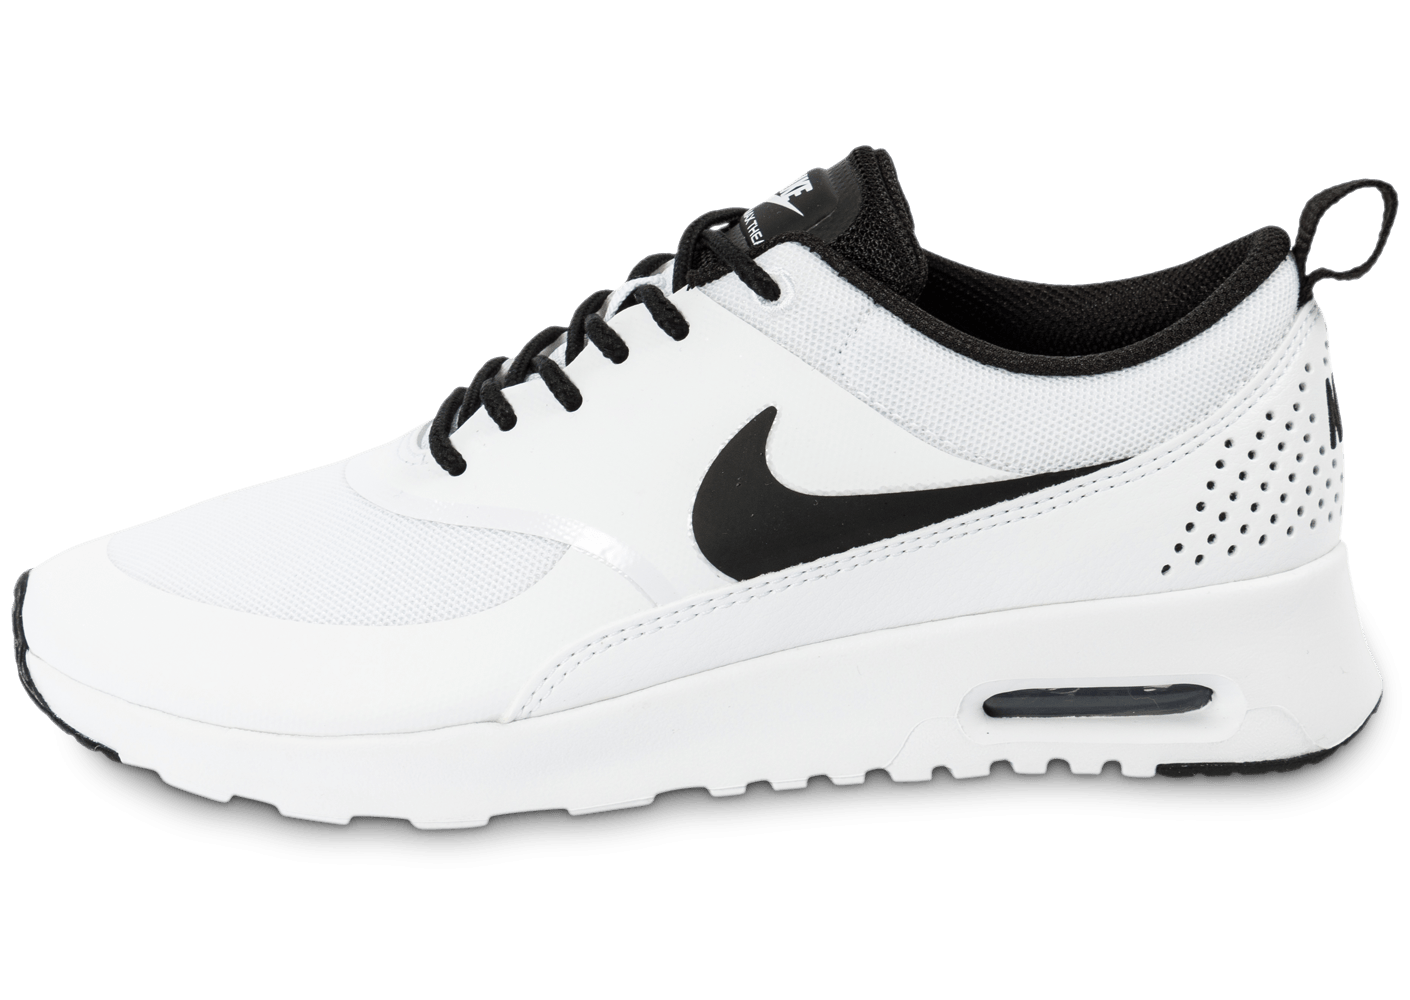 6798c273ec0 france nike air max thea noir and blanc canada 88d94 05d18